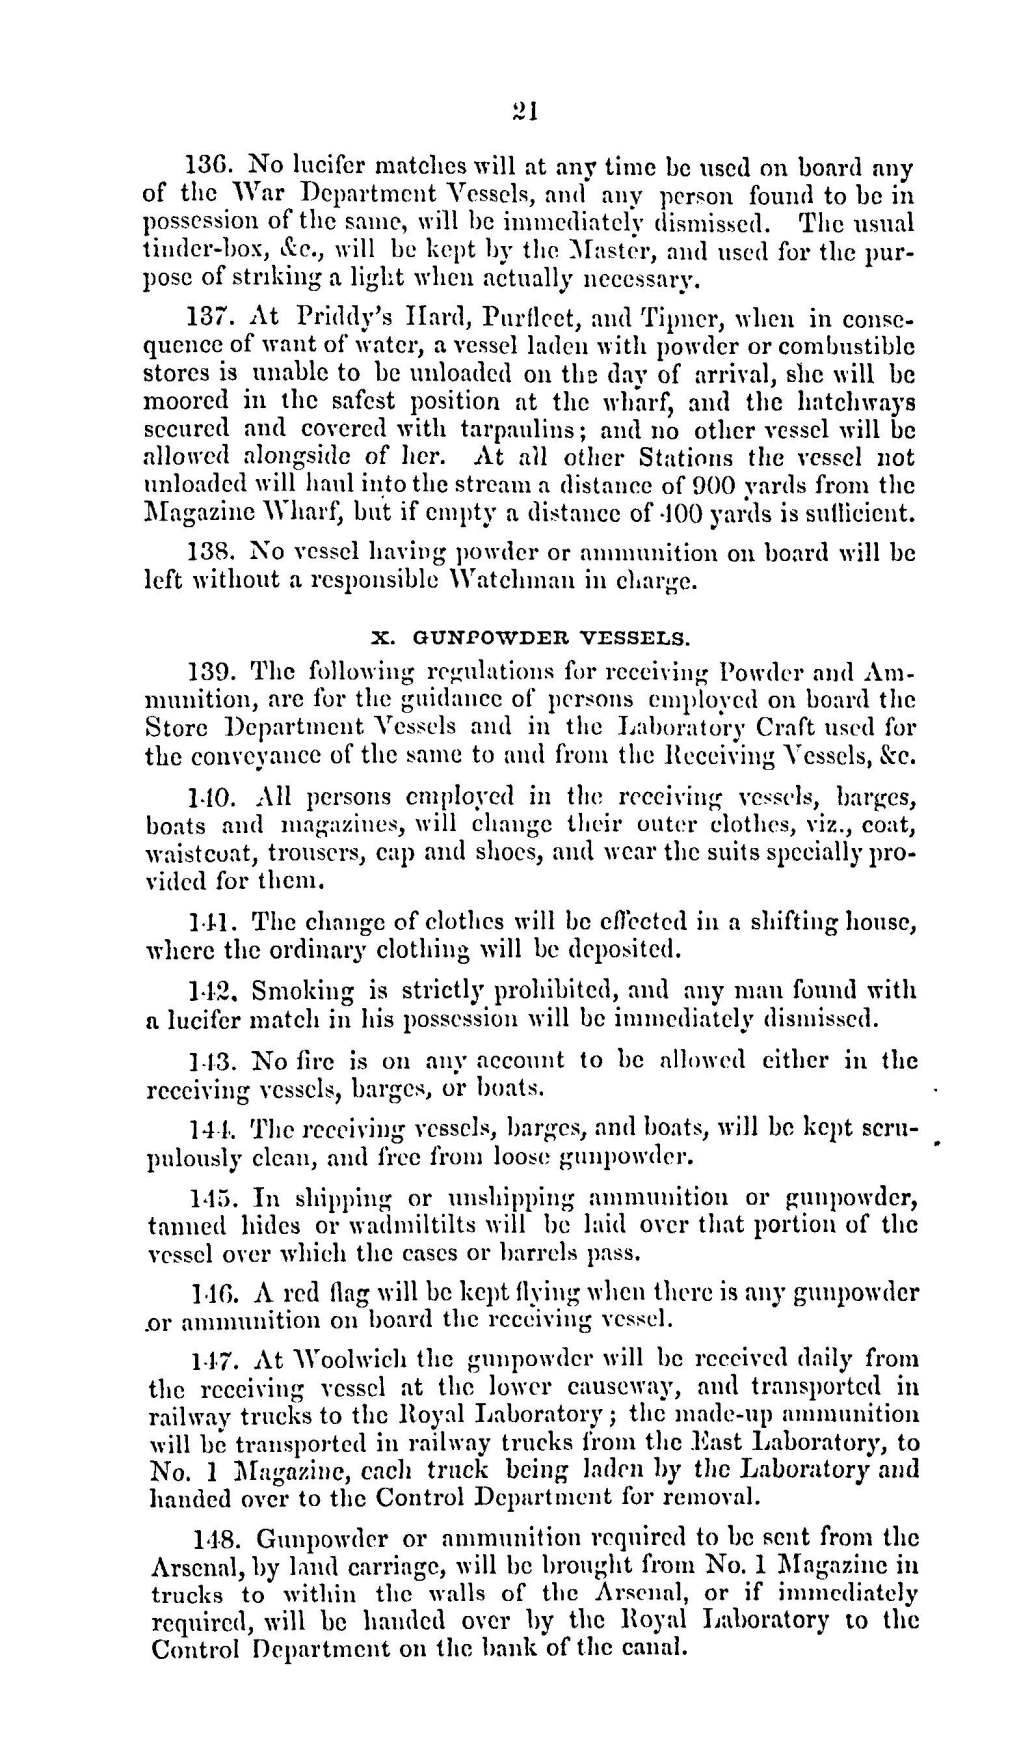 gunpowder regs_Page_21